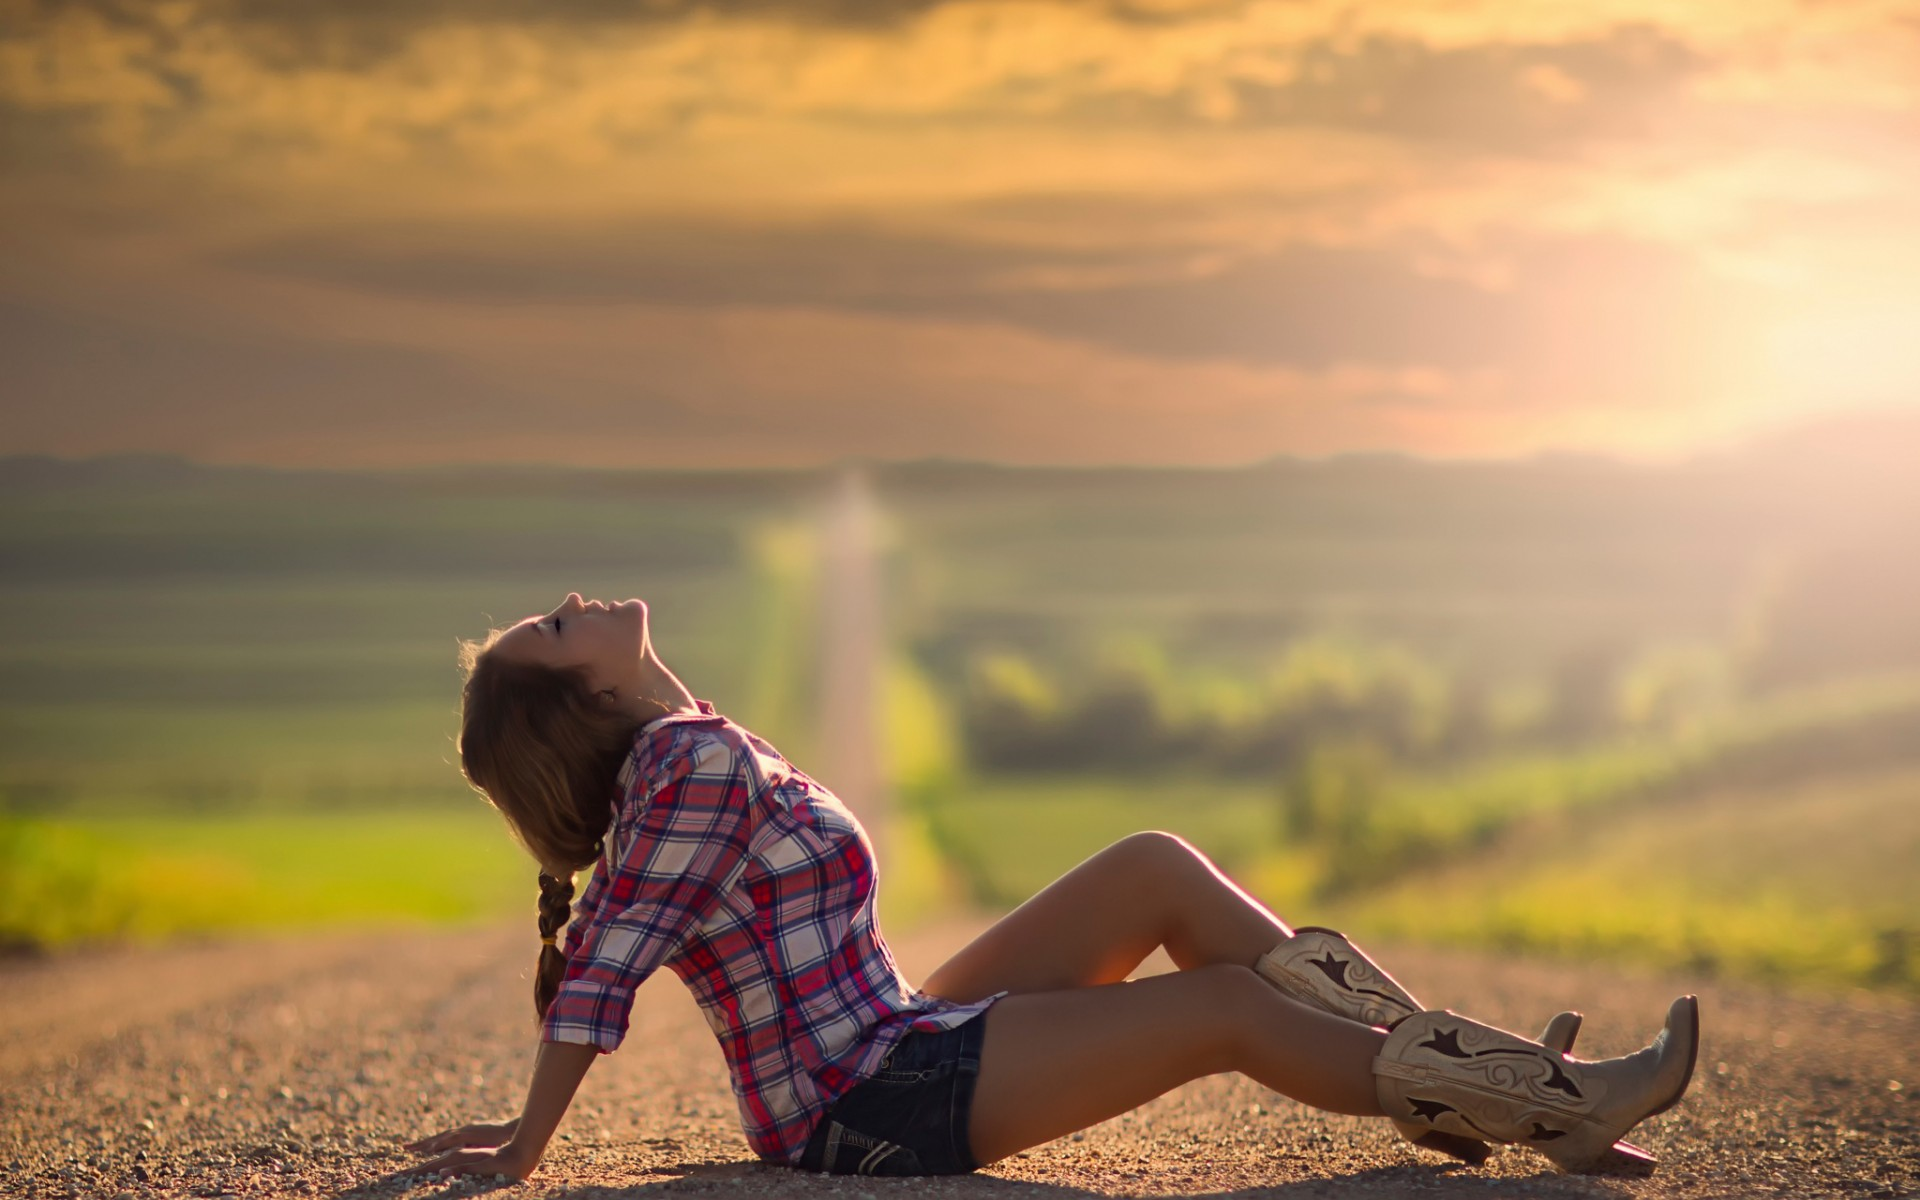 Country Girl Full HD Wallpaper And Background Image